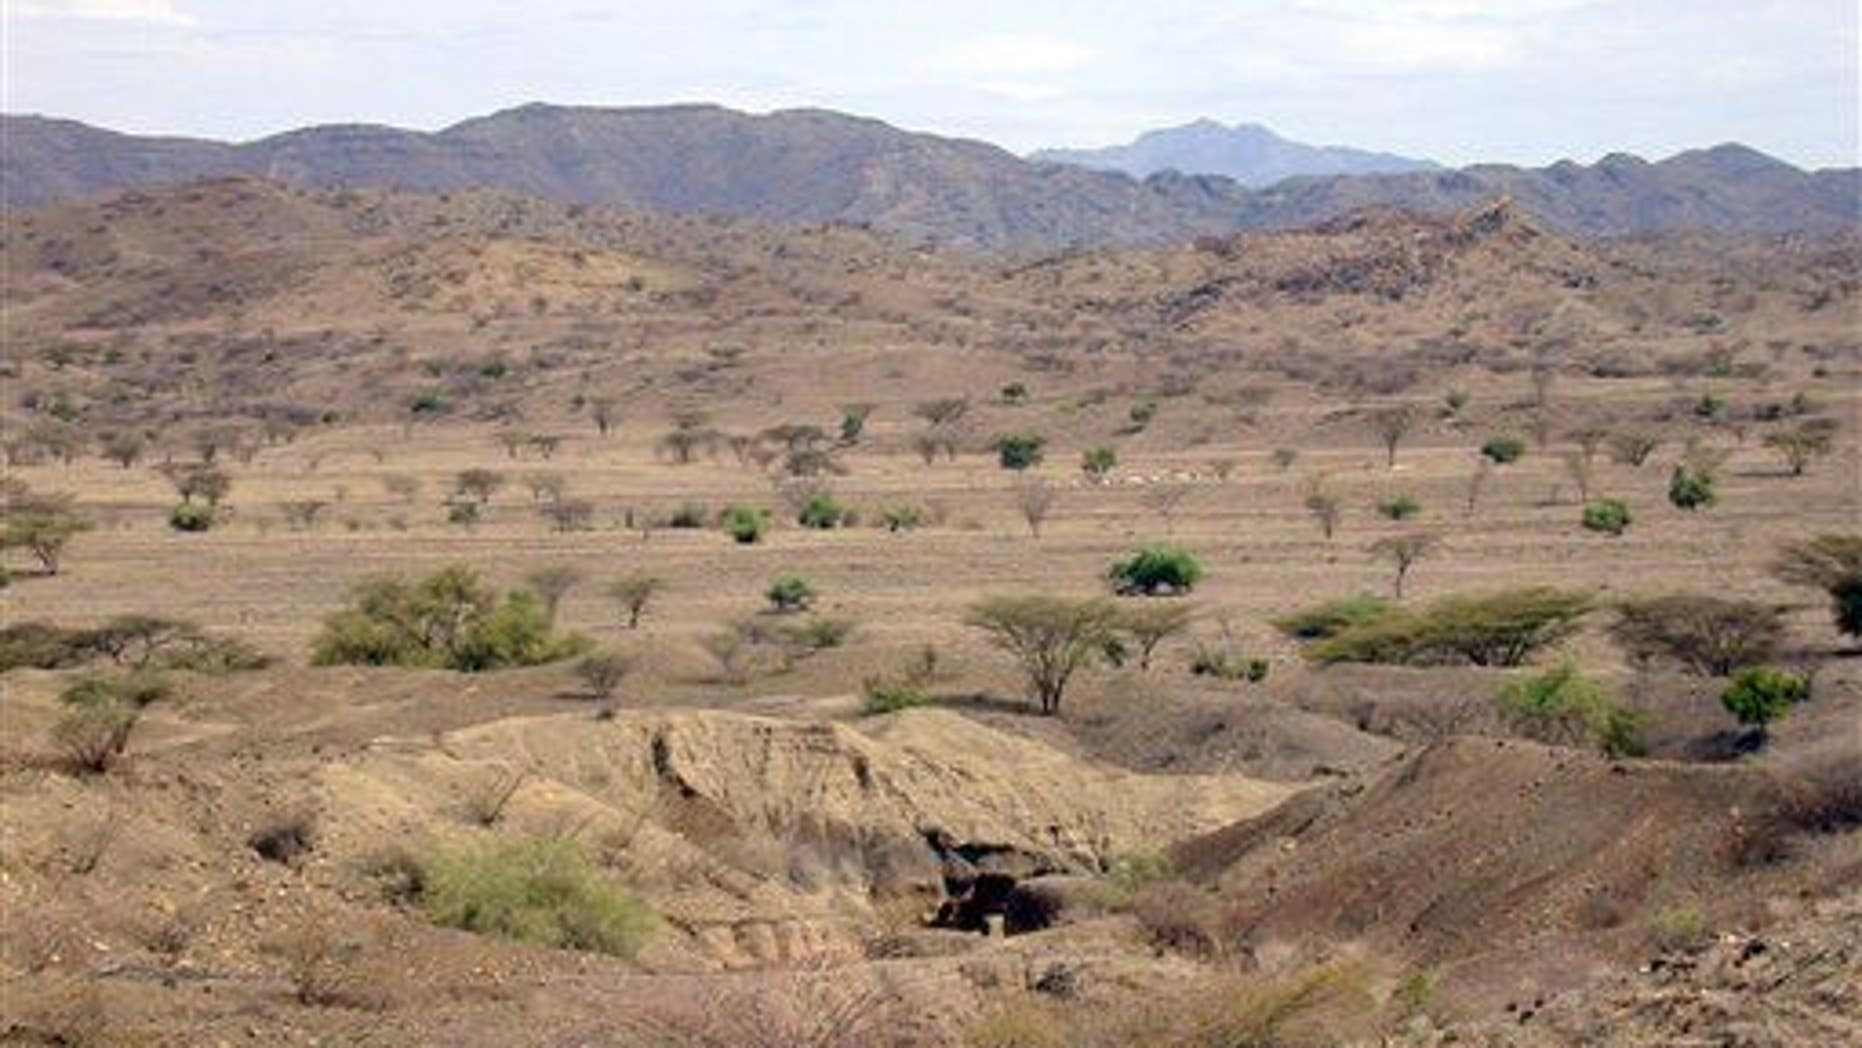 File photo of an archaeological site near the Lake Turkana area in Kenya. The world's earliest known tools may have been found in the region.